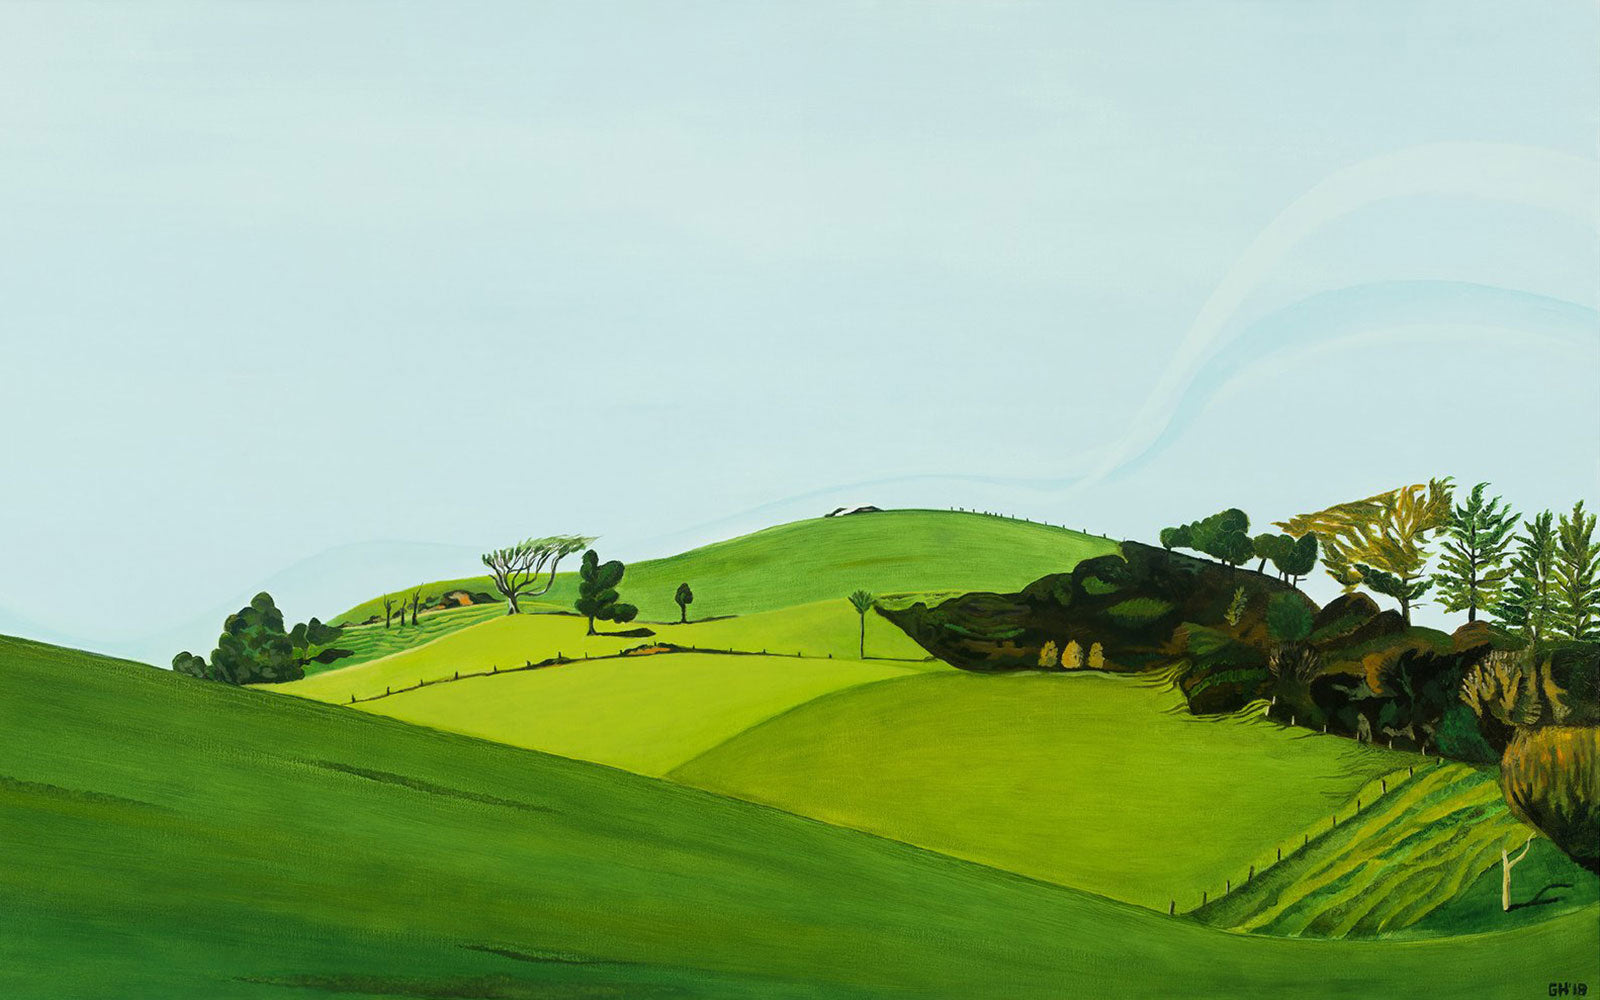 White Rock Hill Painting by Guy Harkness / New Plymouth Taranaki